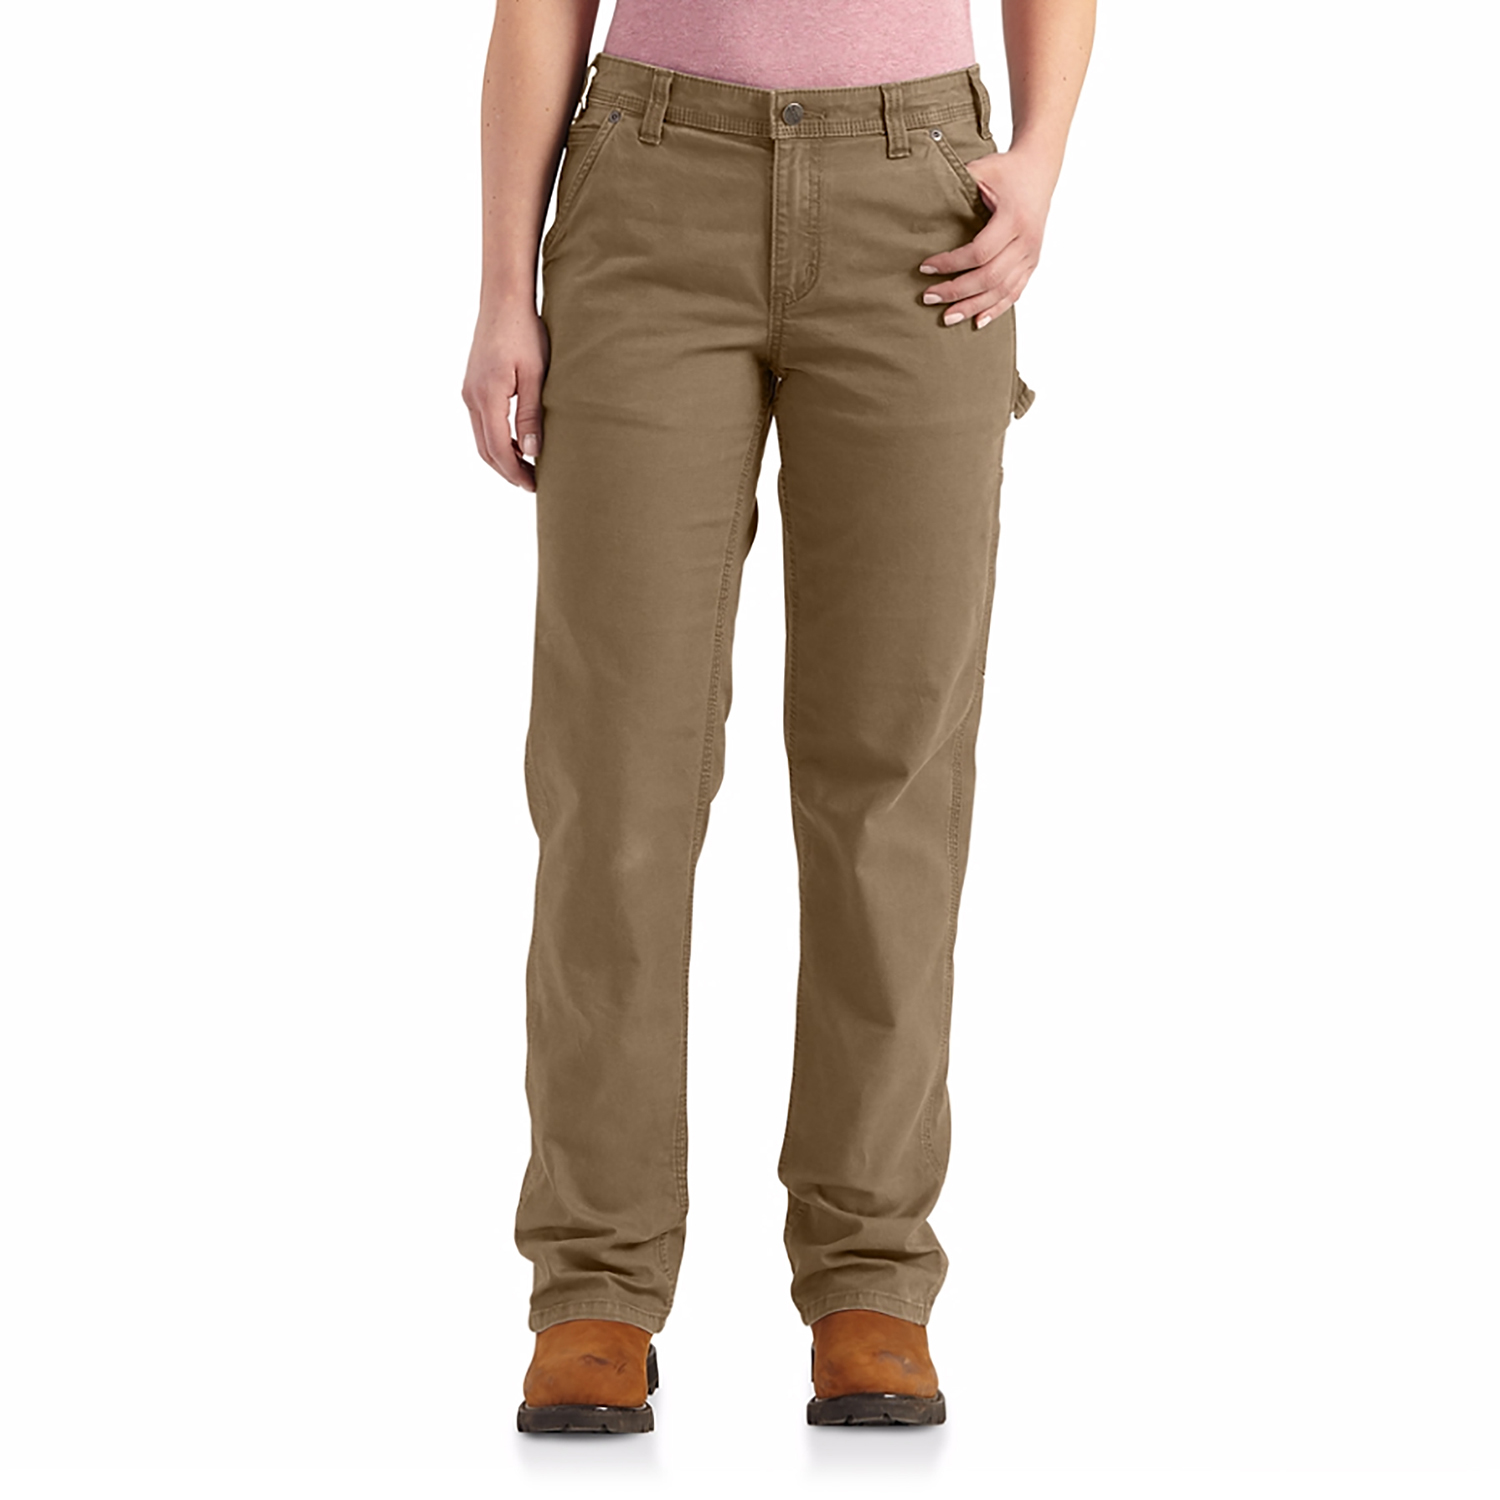 Carhartt Womens Original Fit Crawford Pant